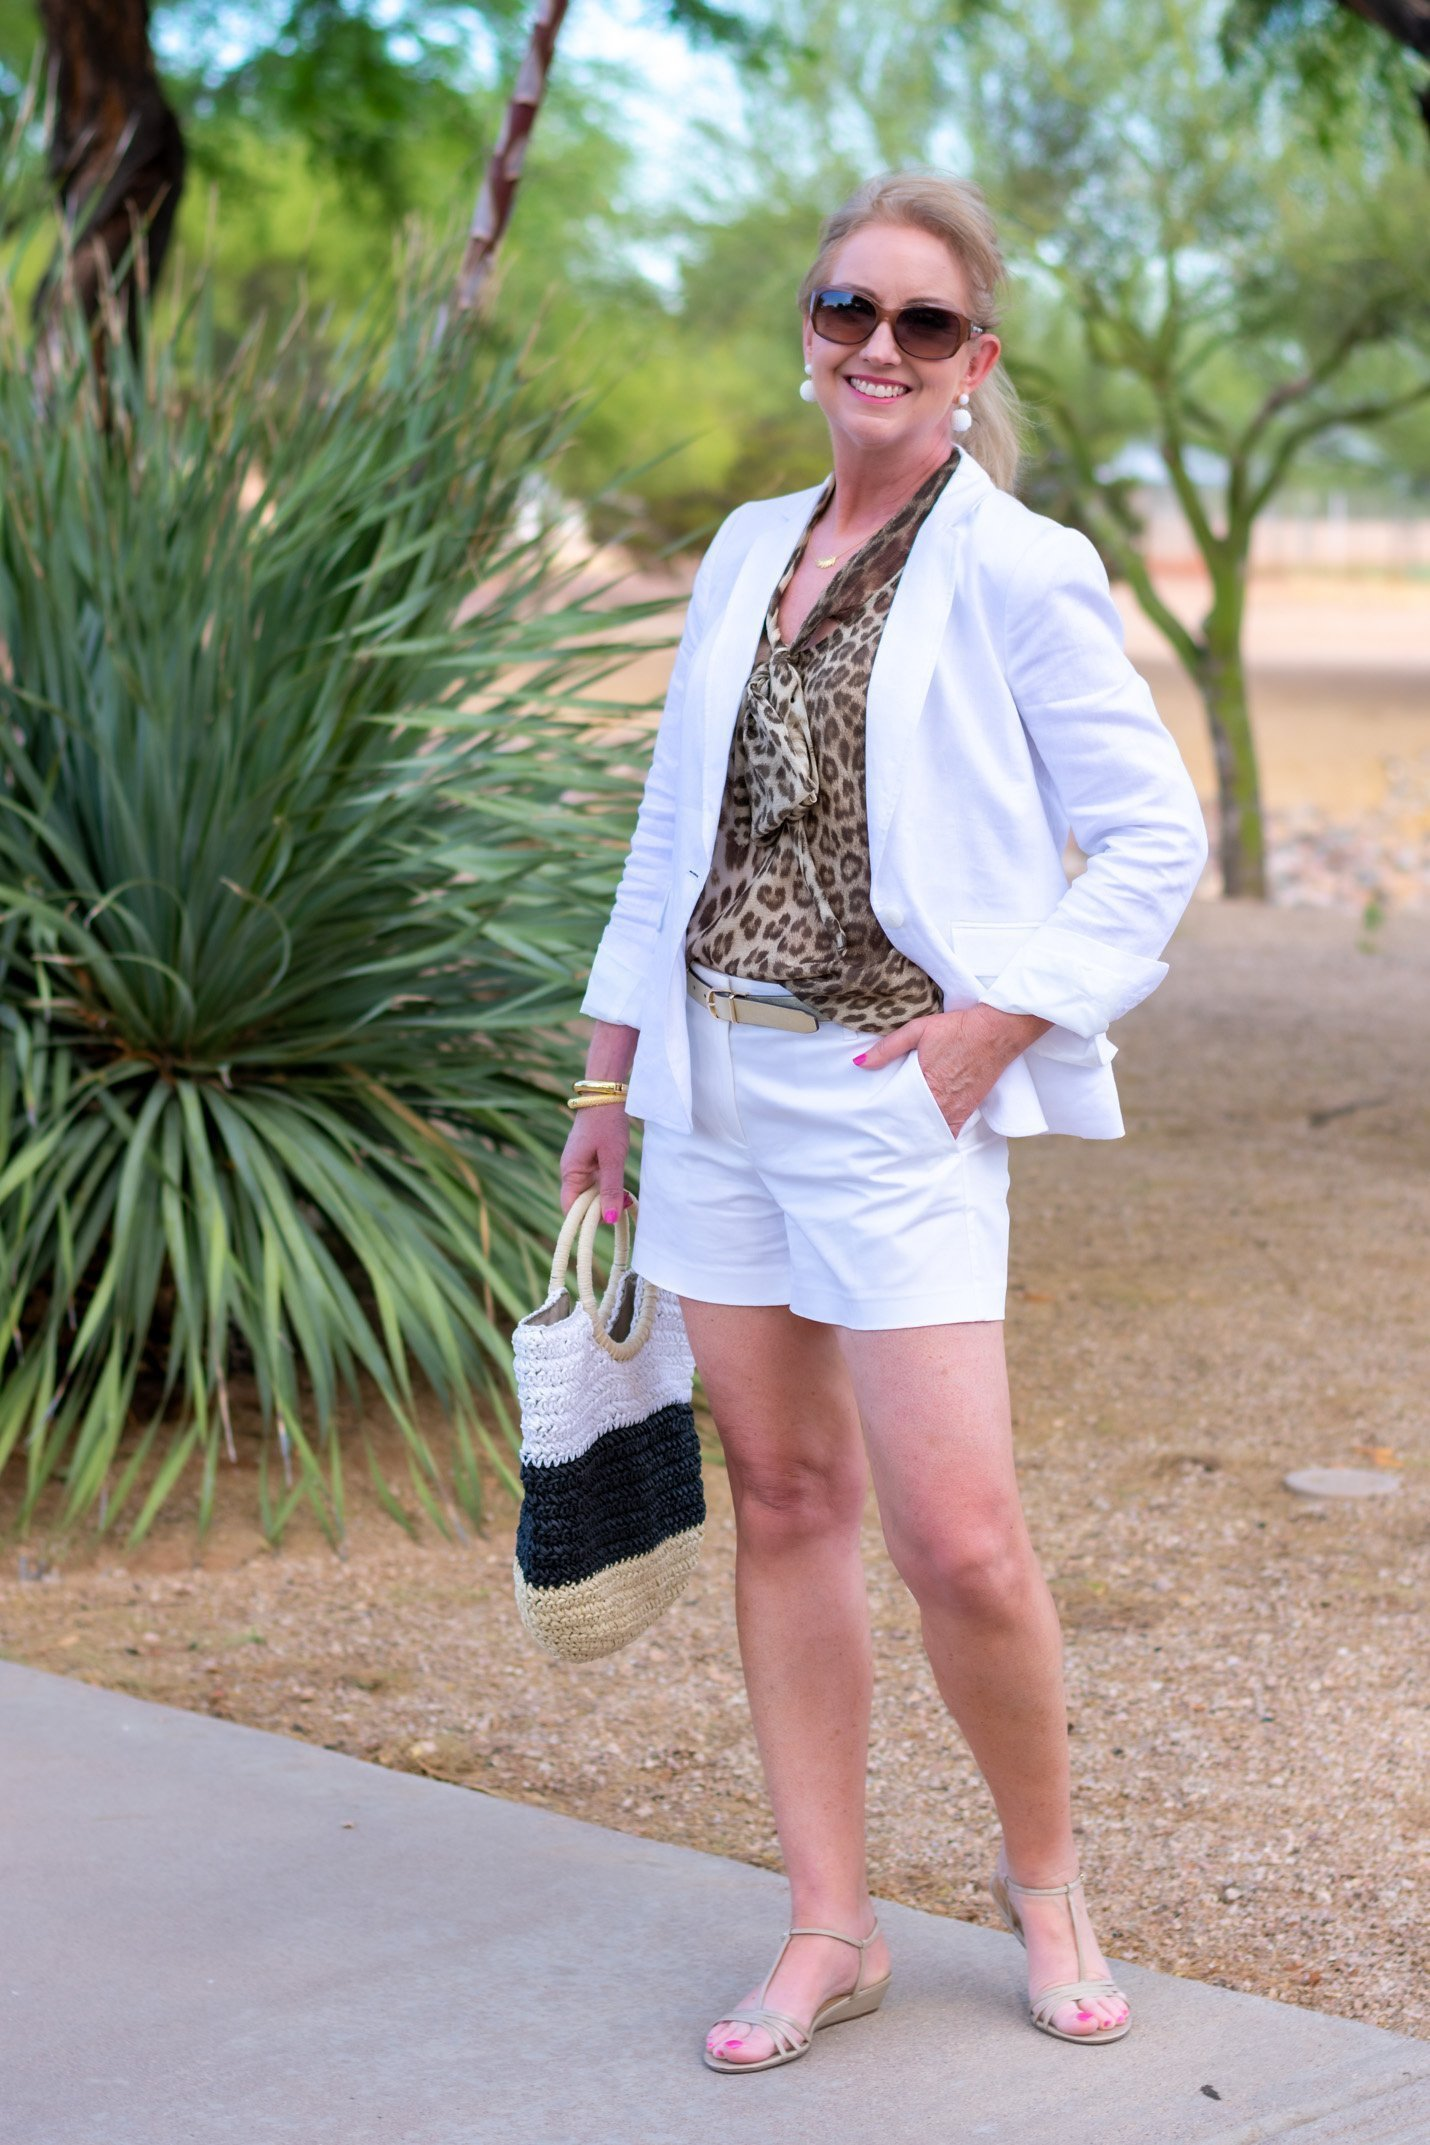 How to Style Summer Chic